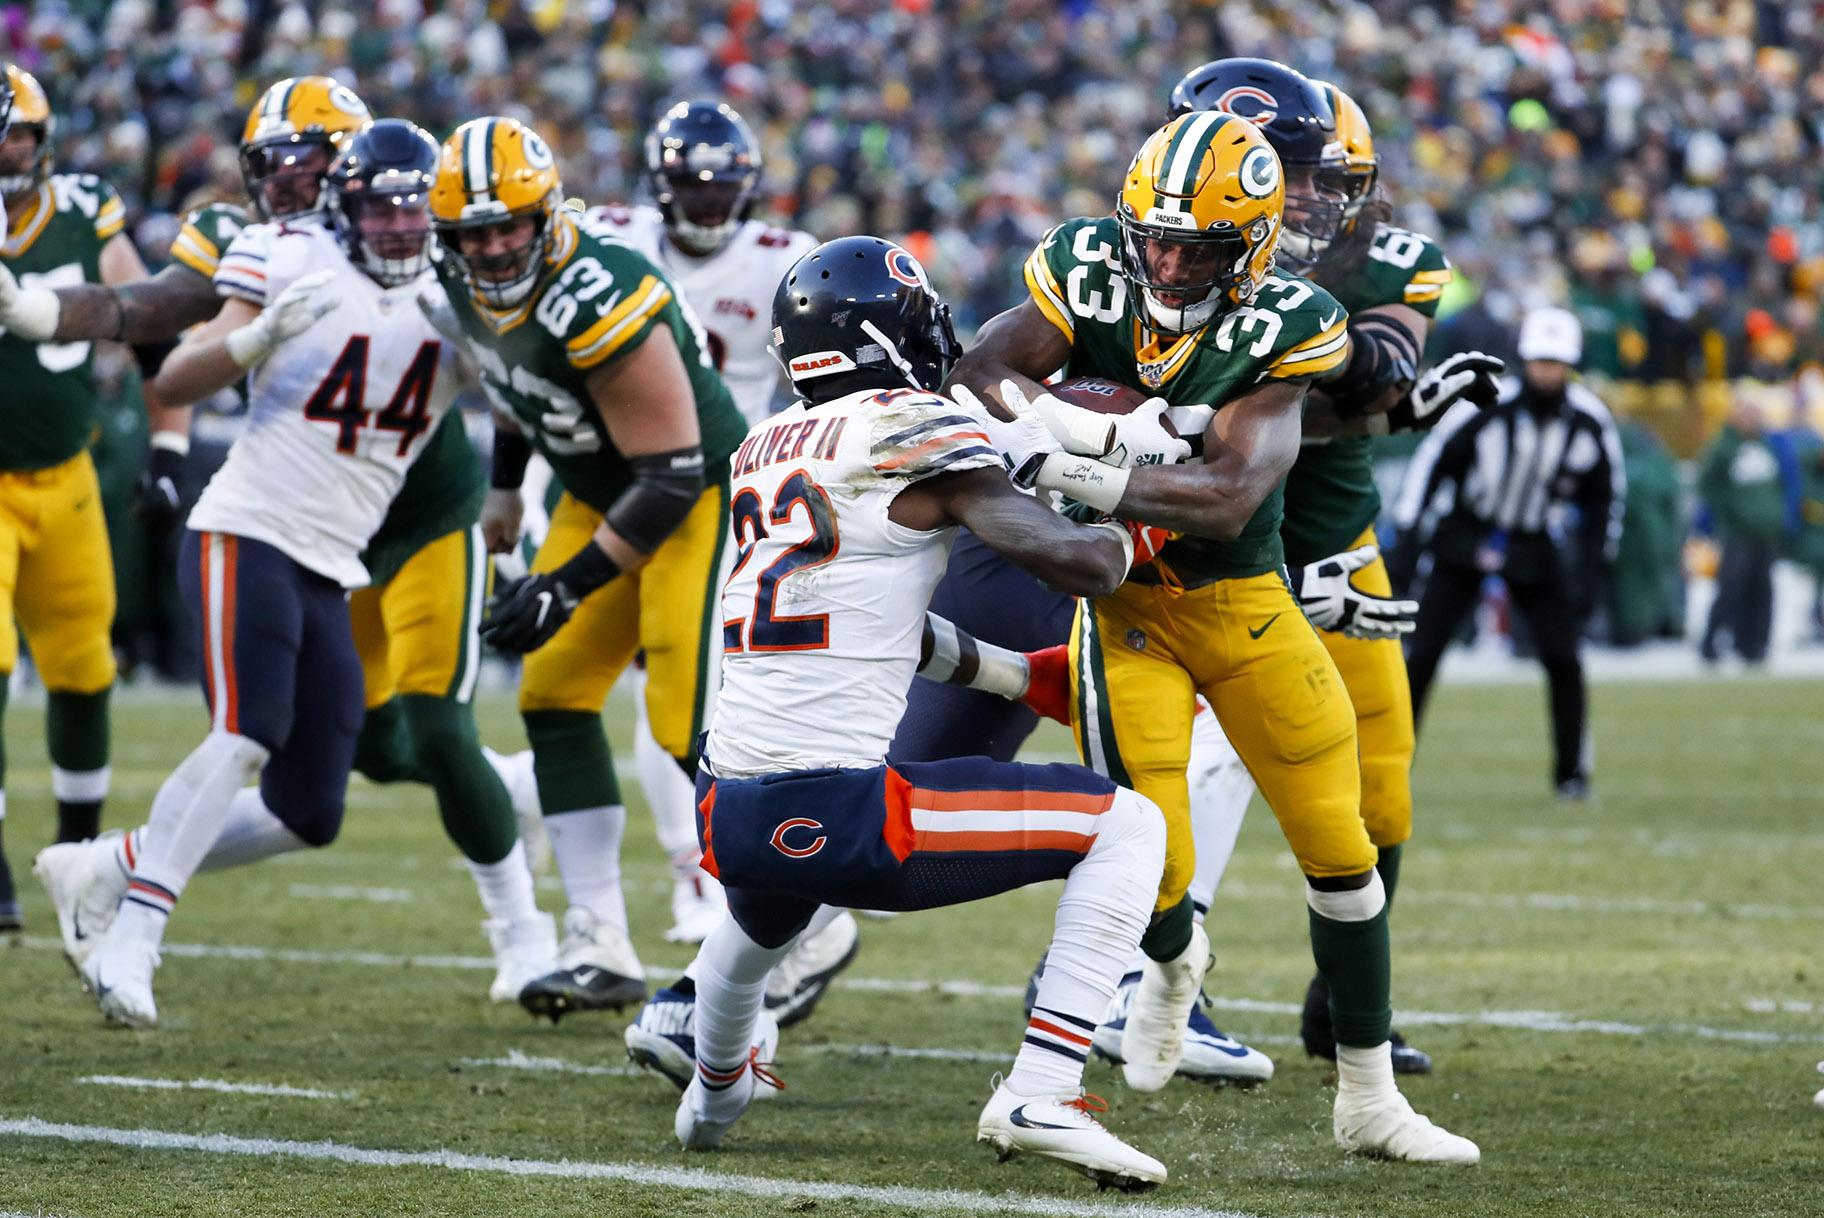 Green Bay Packers' Aaron Jones runs for a touchdown during the second half of an NFL football game against the Chicago Bears Sunday, Dec. 15, 2019, in Green Bay, Wis. (AP Photo / Matt Ludtke